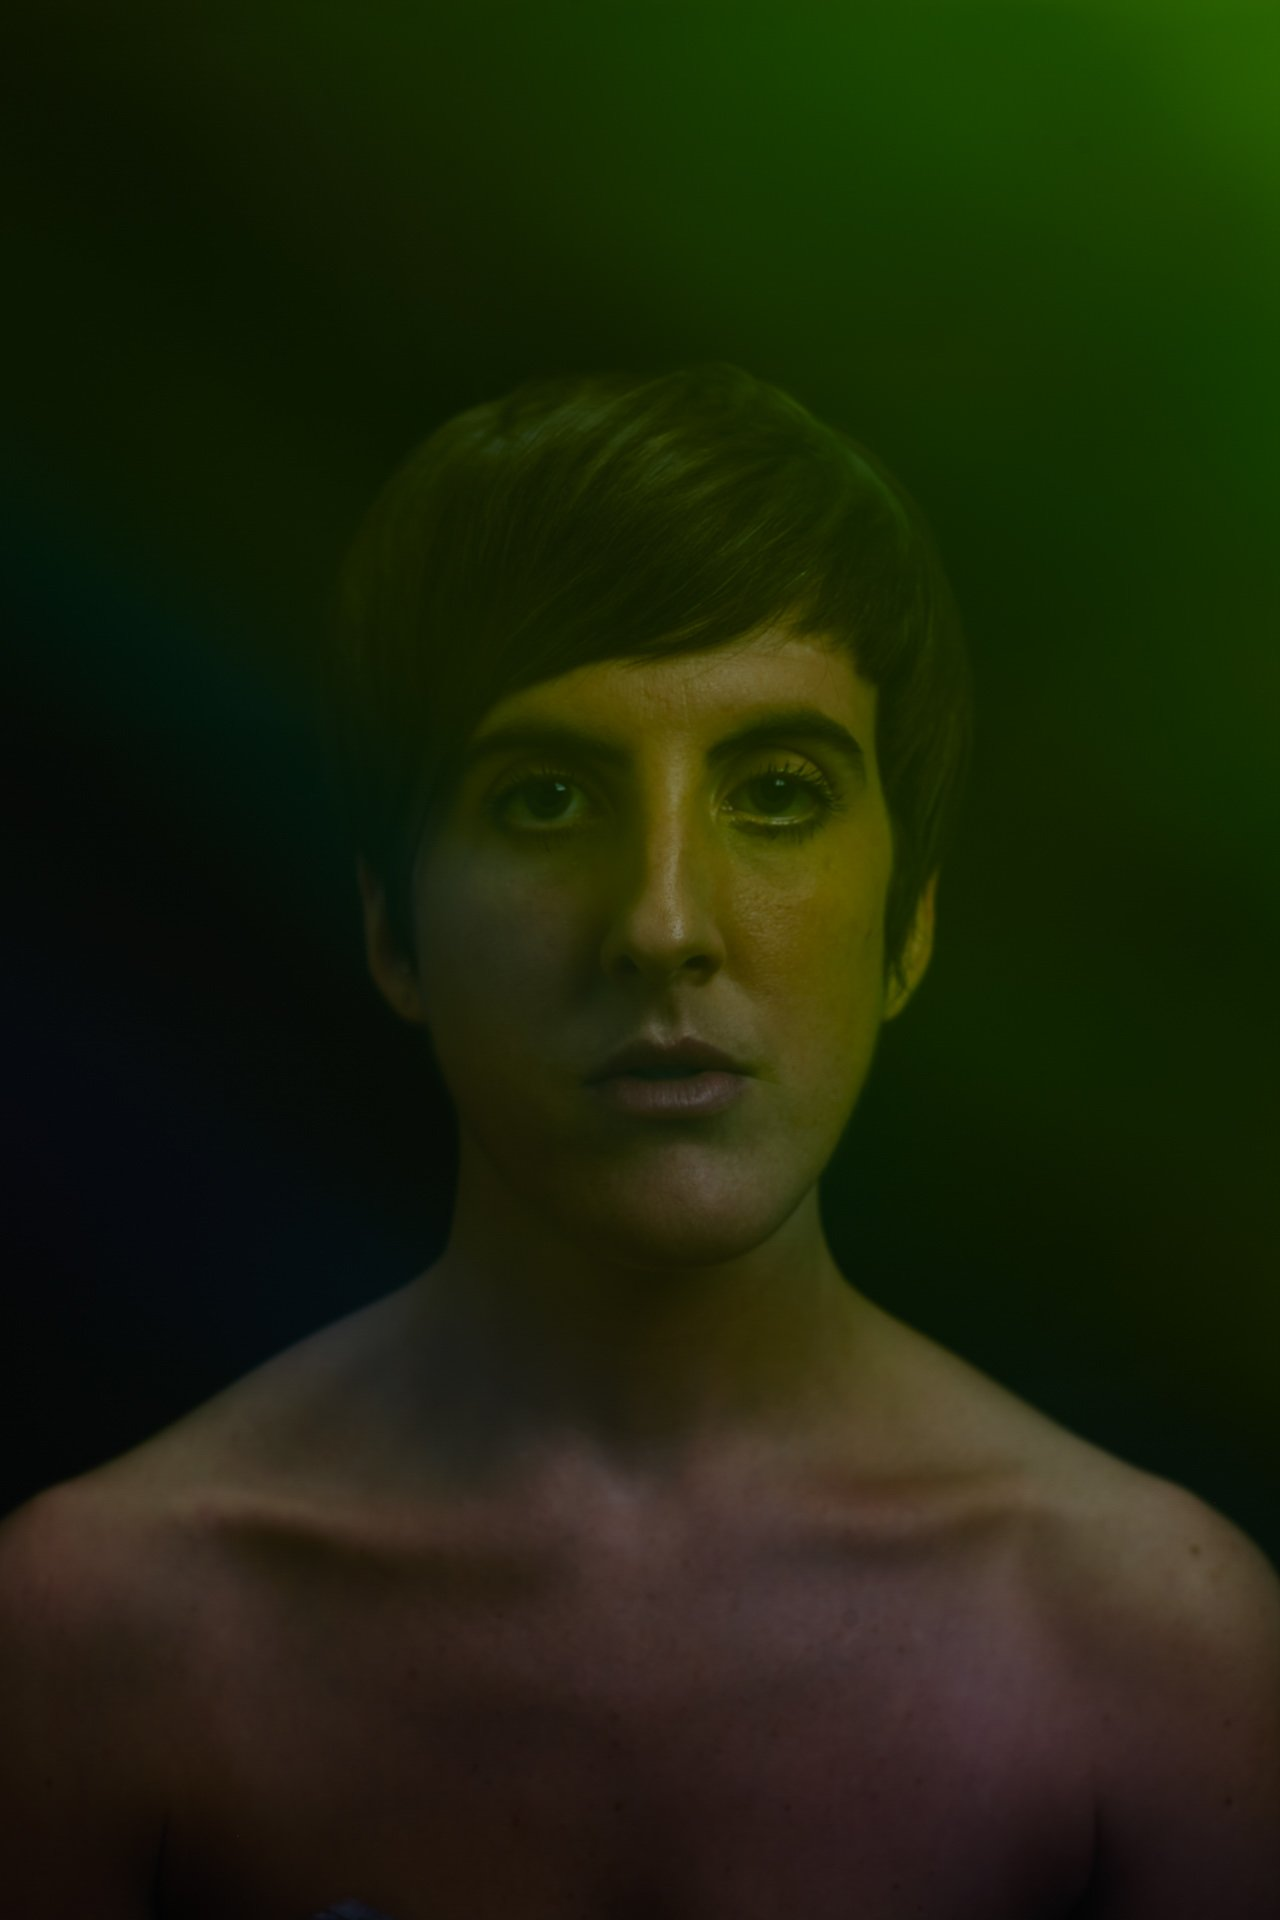 Darkly lit portrait of Hannah Laycock against a black backdrop with a spectrum of colour across her skin